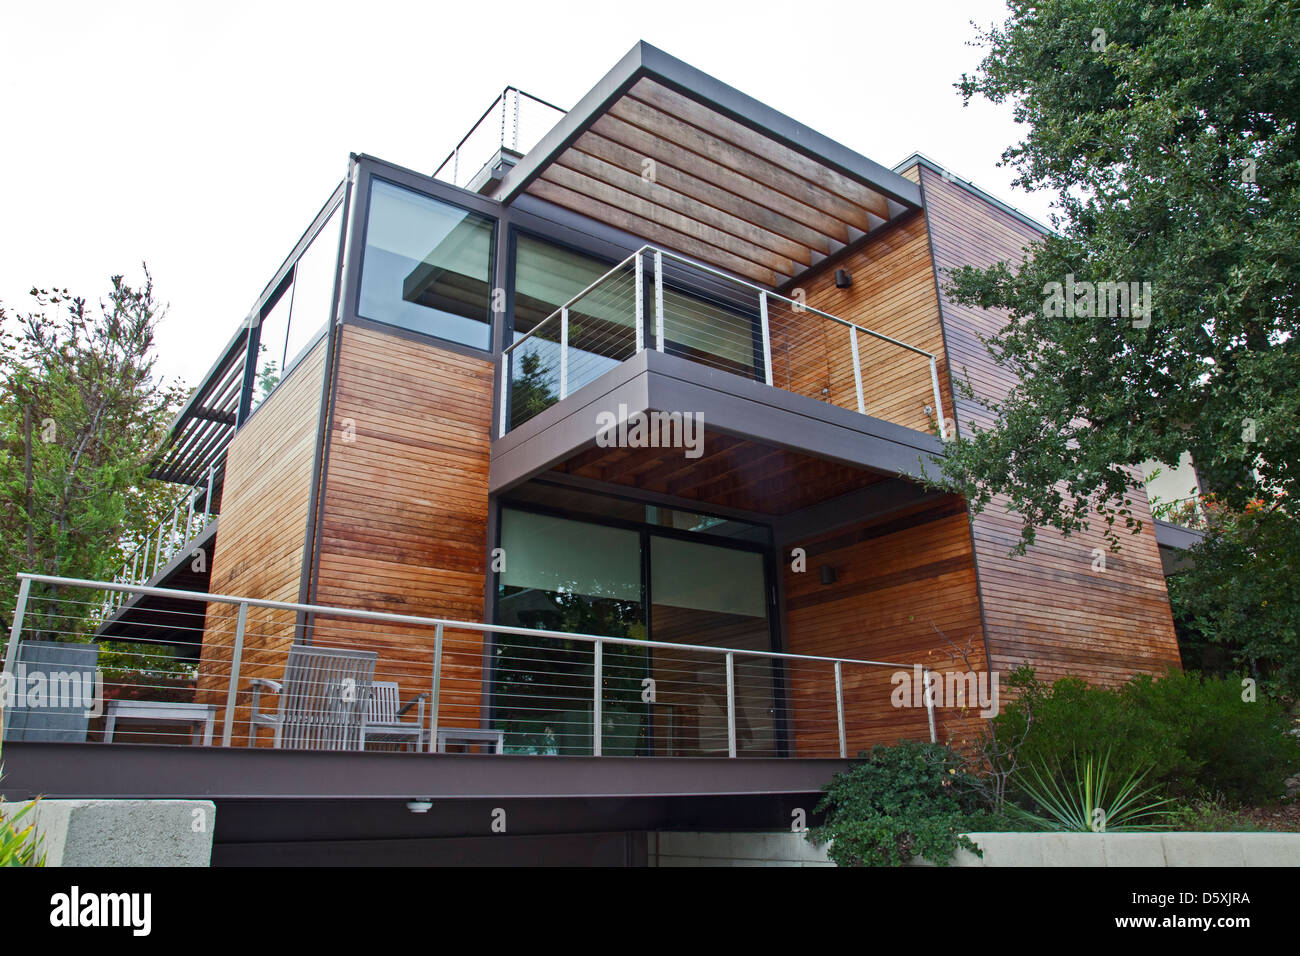 Wonderful A Multi Level, Prefab, Modular Green Home By The Company LivingHomes And  Consists Of 11 Modular Sections. Santa Monica, CA